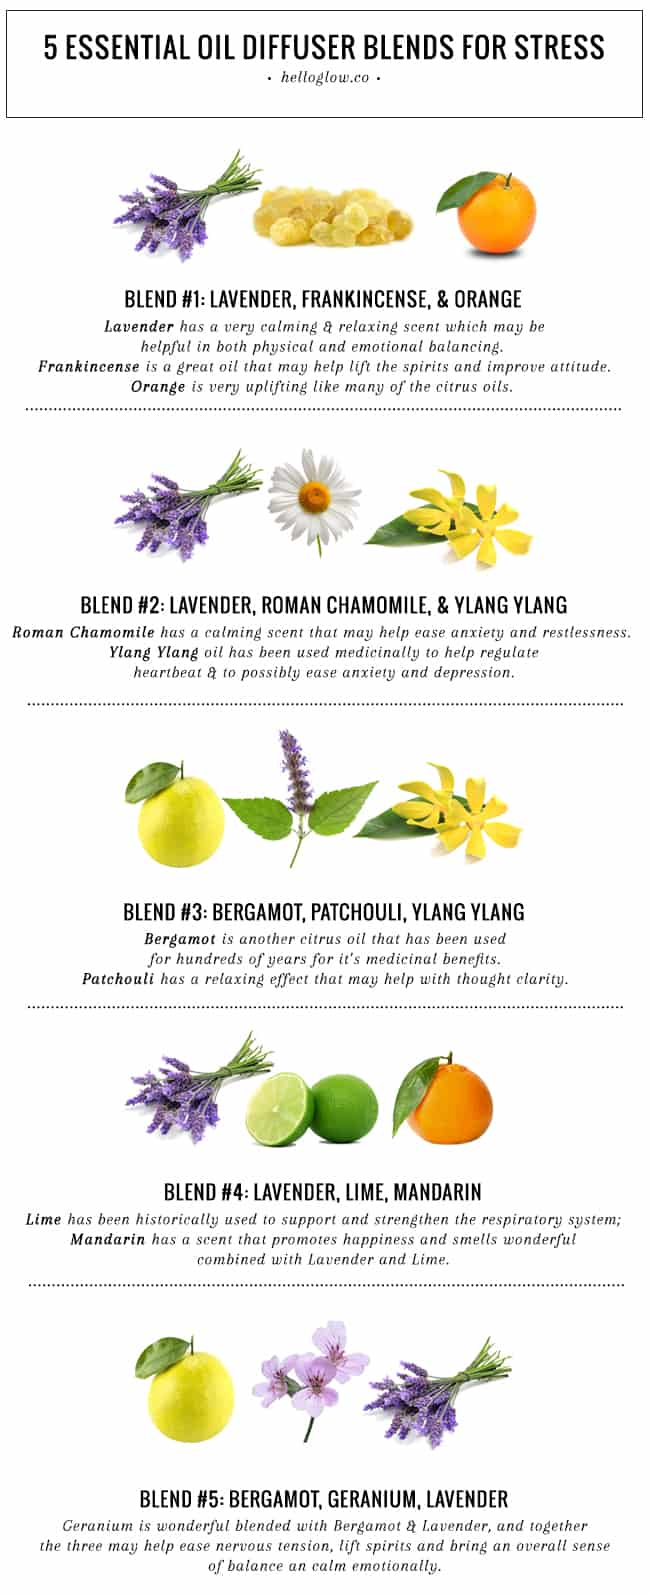 5 Essential Oil Diffuser Blends For Stress Hello Glow